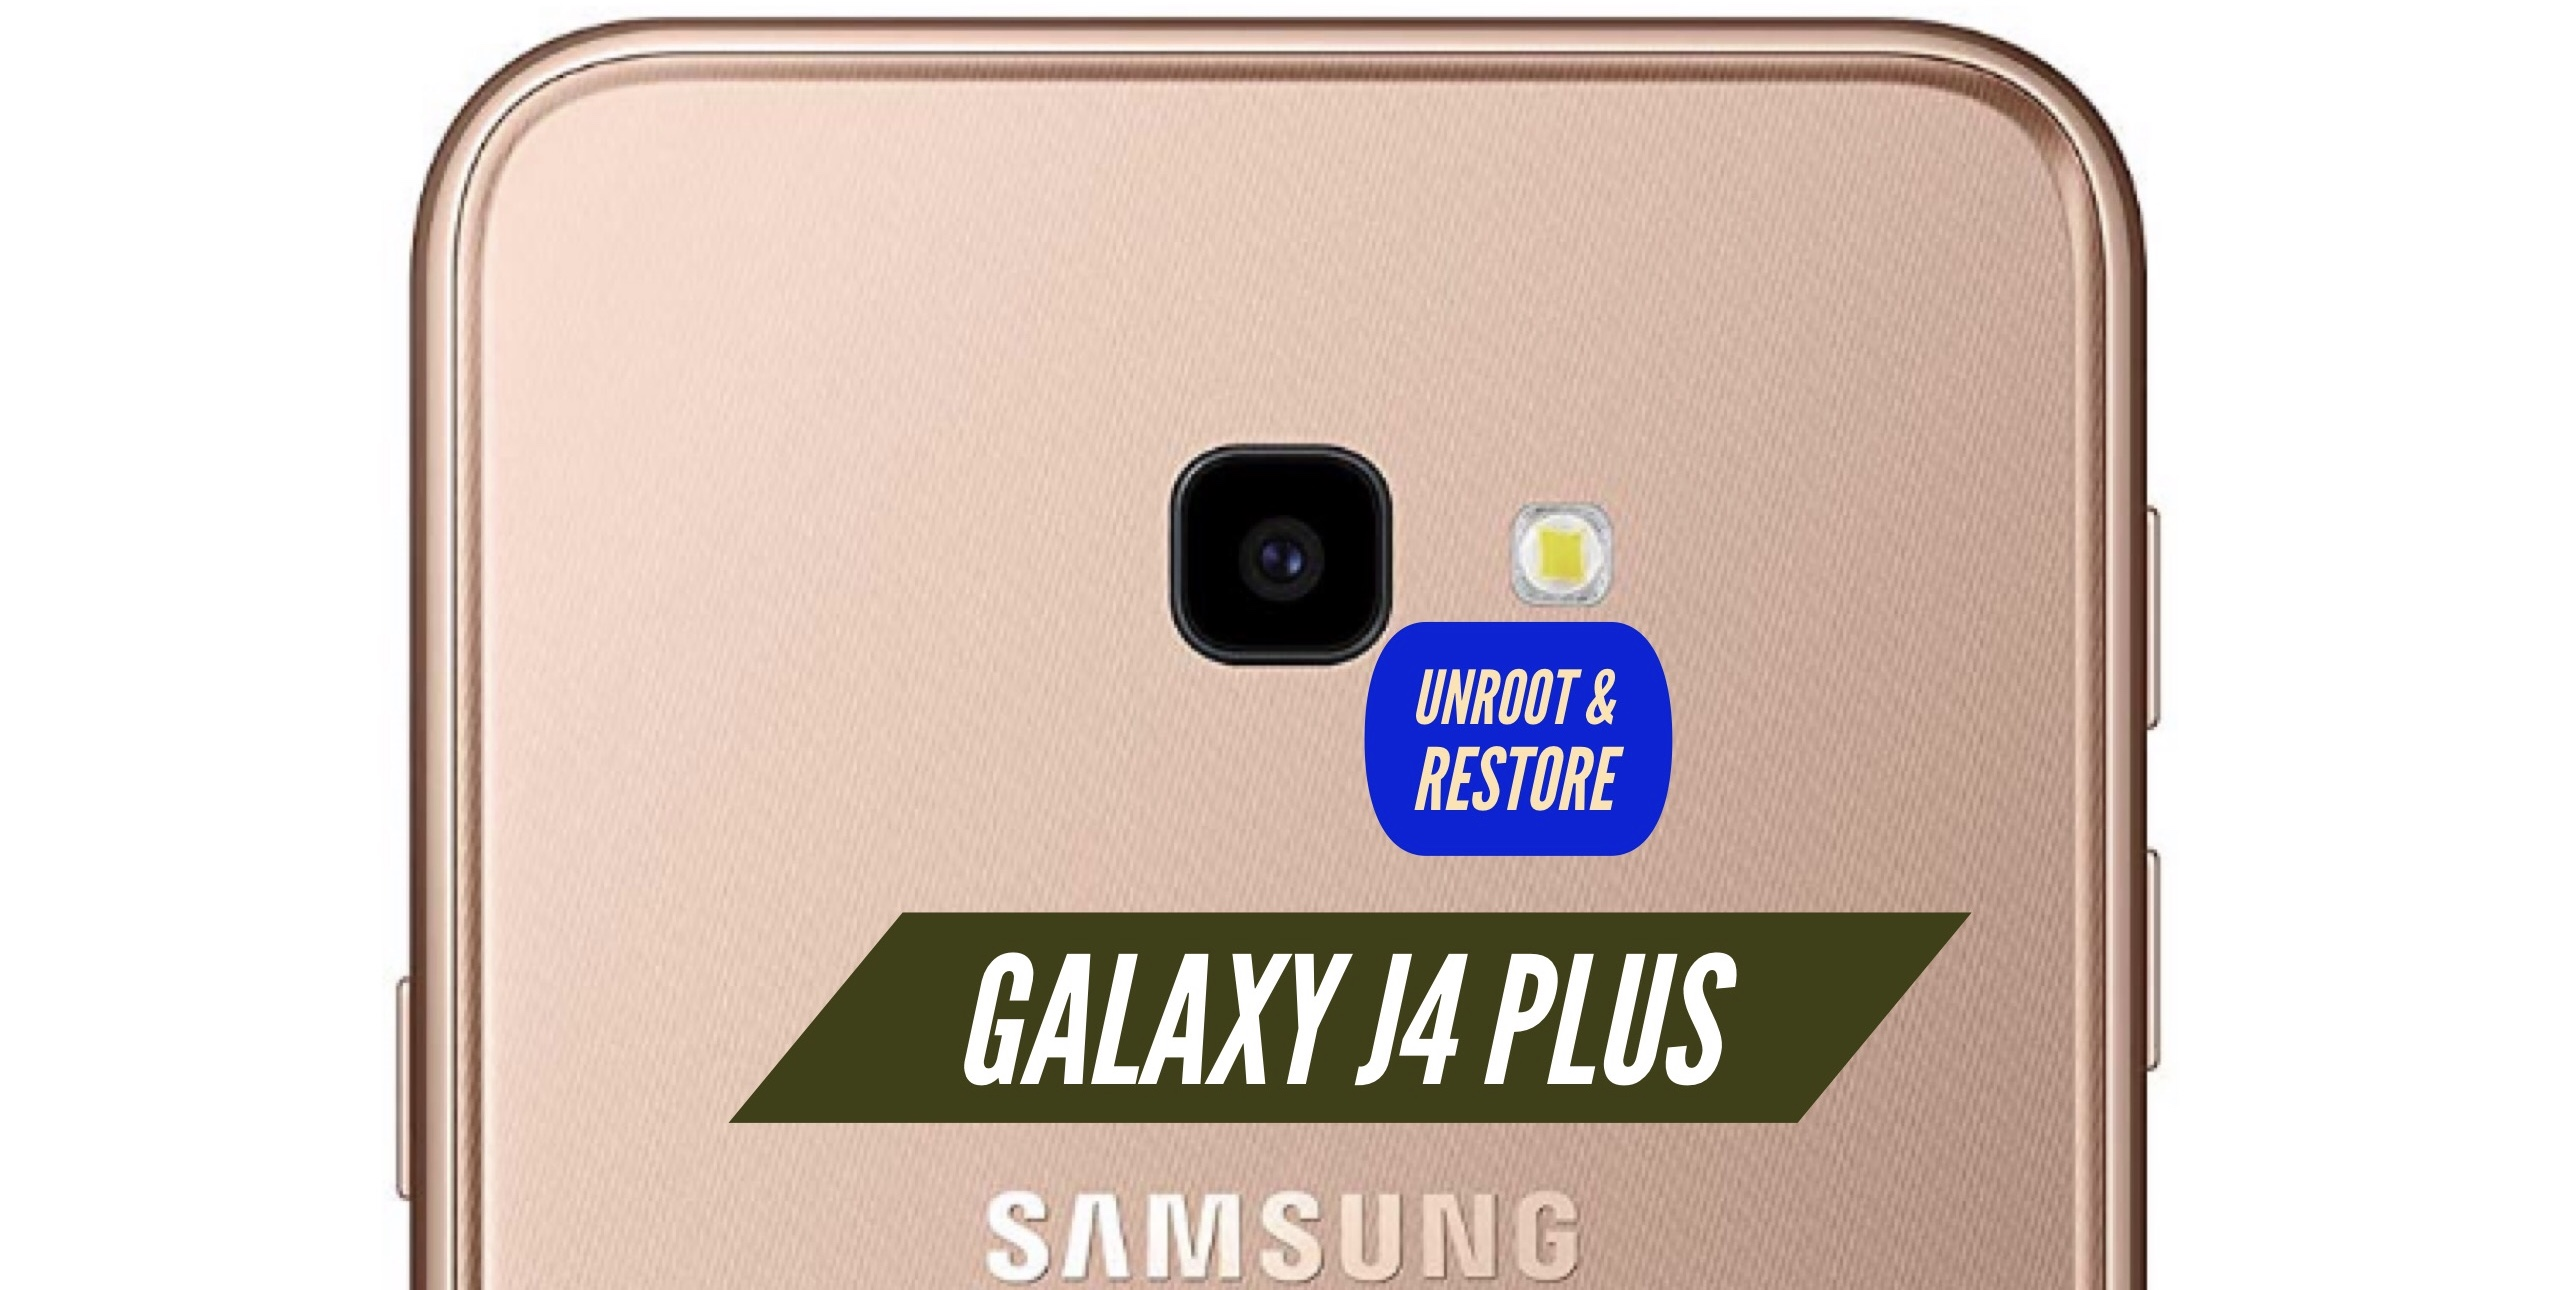 Unroot Galaxy J4 Plus & Restore - Stock ROM Firmware Download!